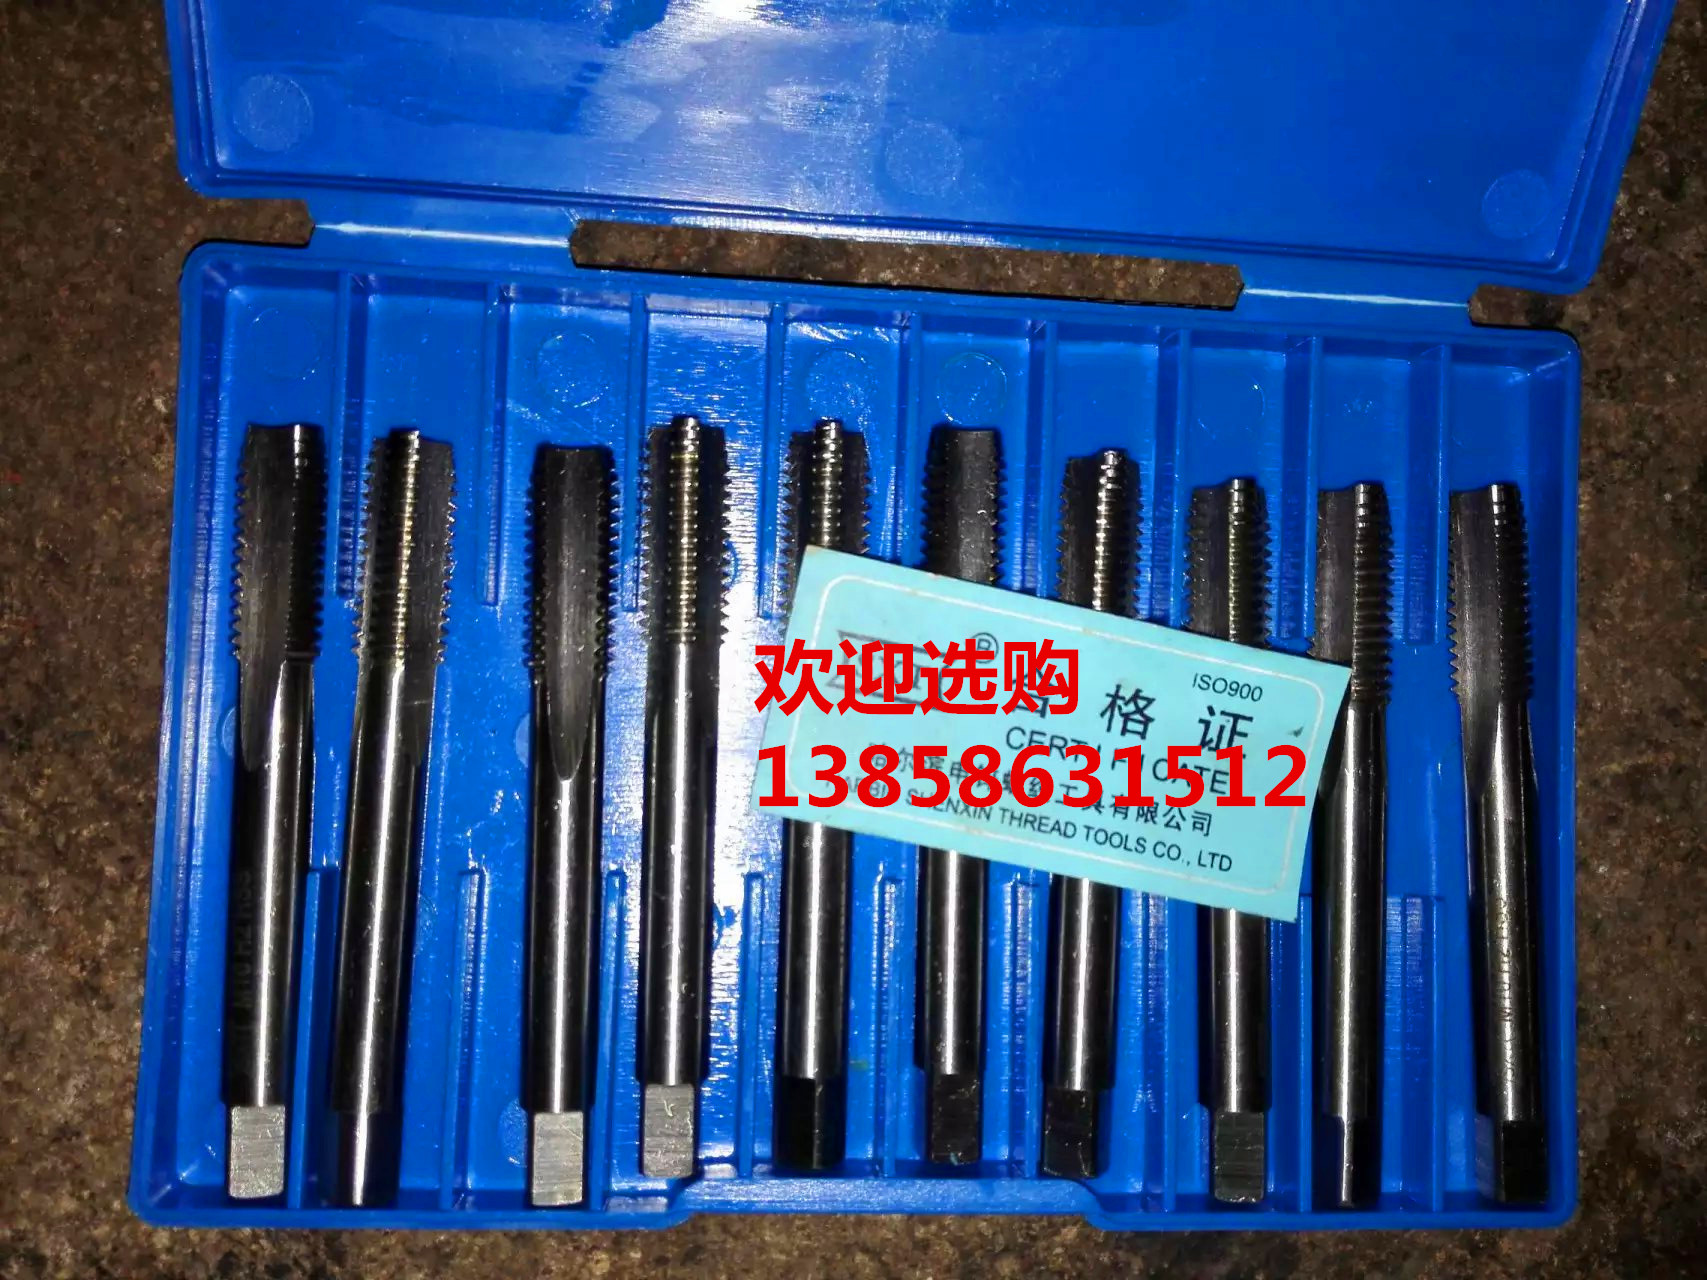 Wire tapping cone M33M34M35M36M37*1*1.5*2*2.5*3*3.5*4 with Harbin haliang machine